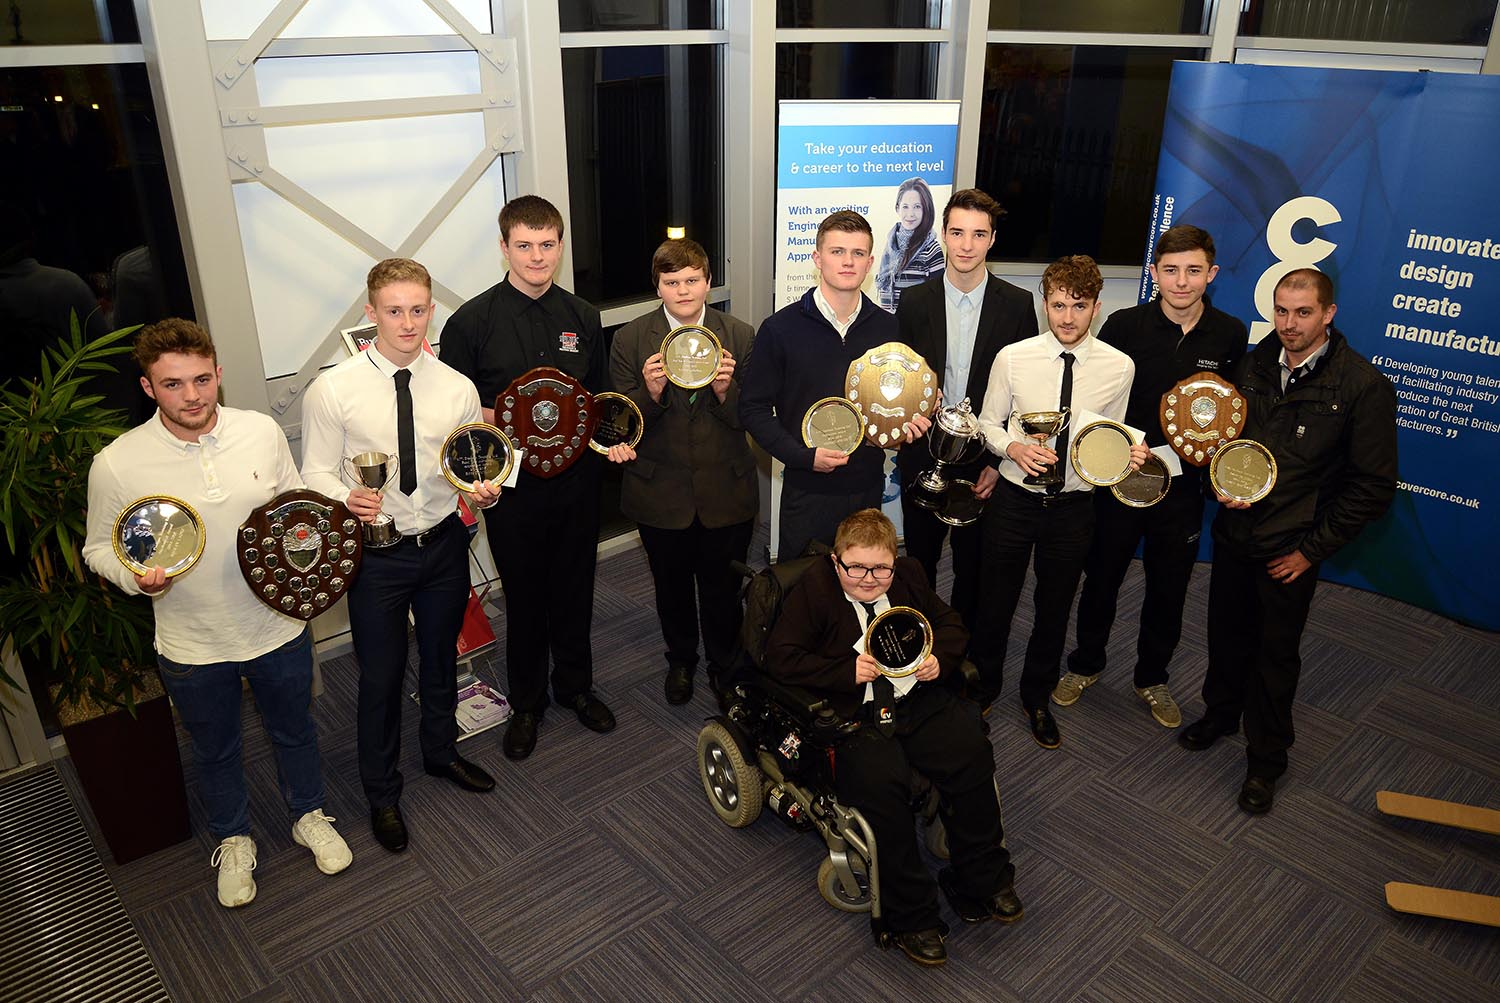 Top Ten Apprentices Receive Awards